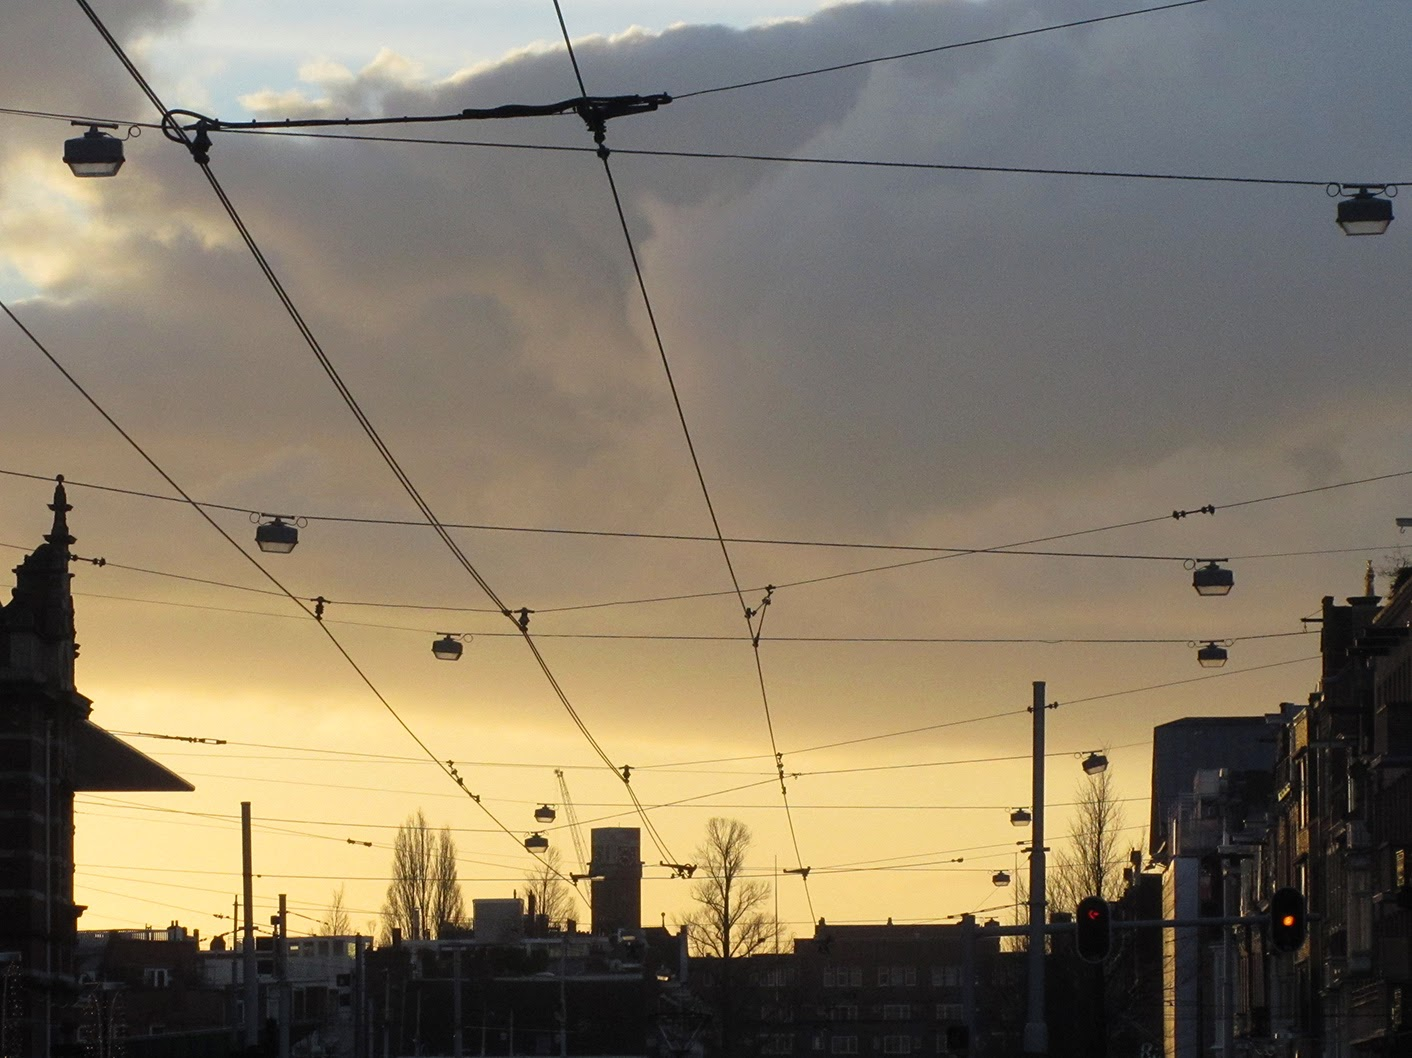 eery light from street with tram cables